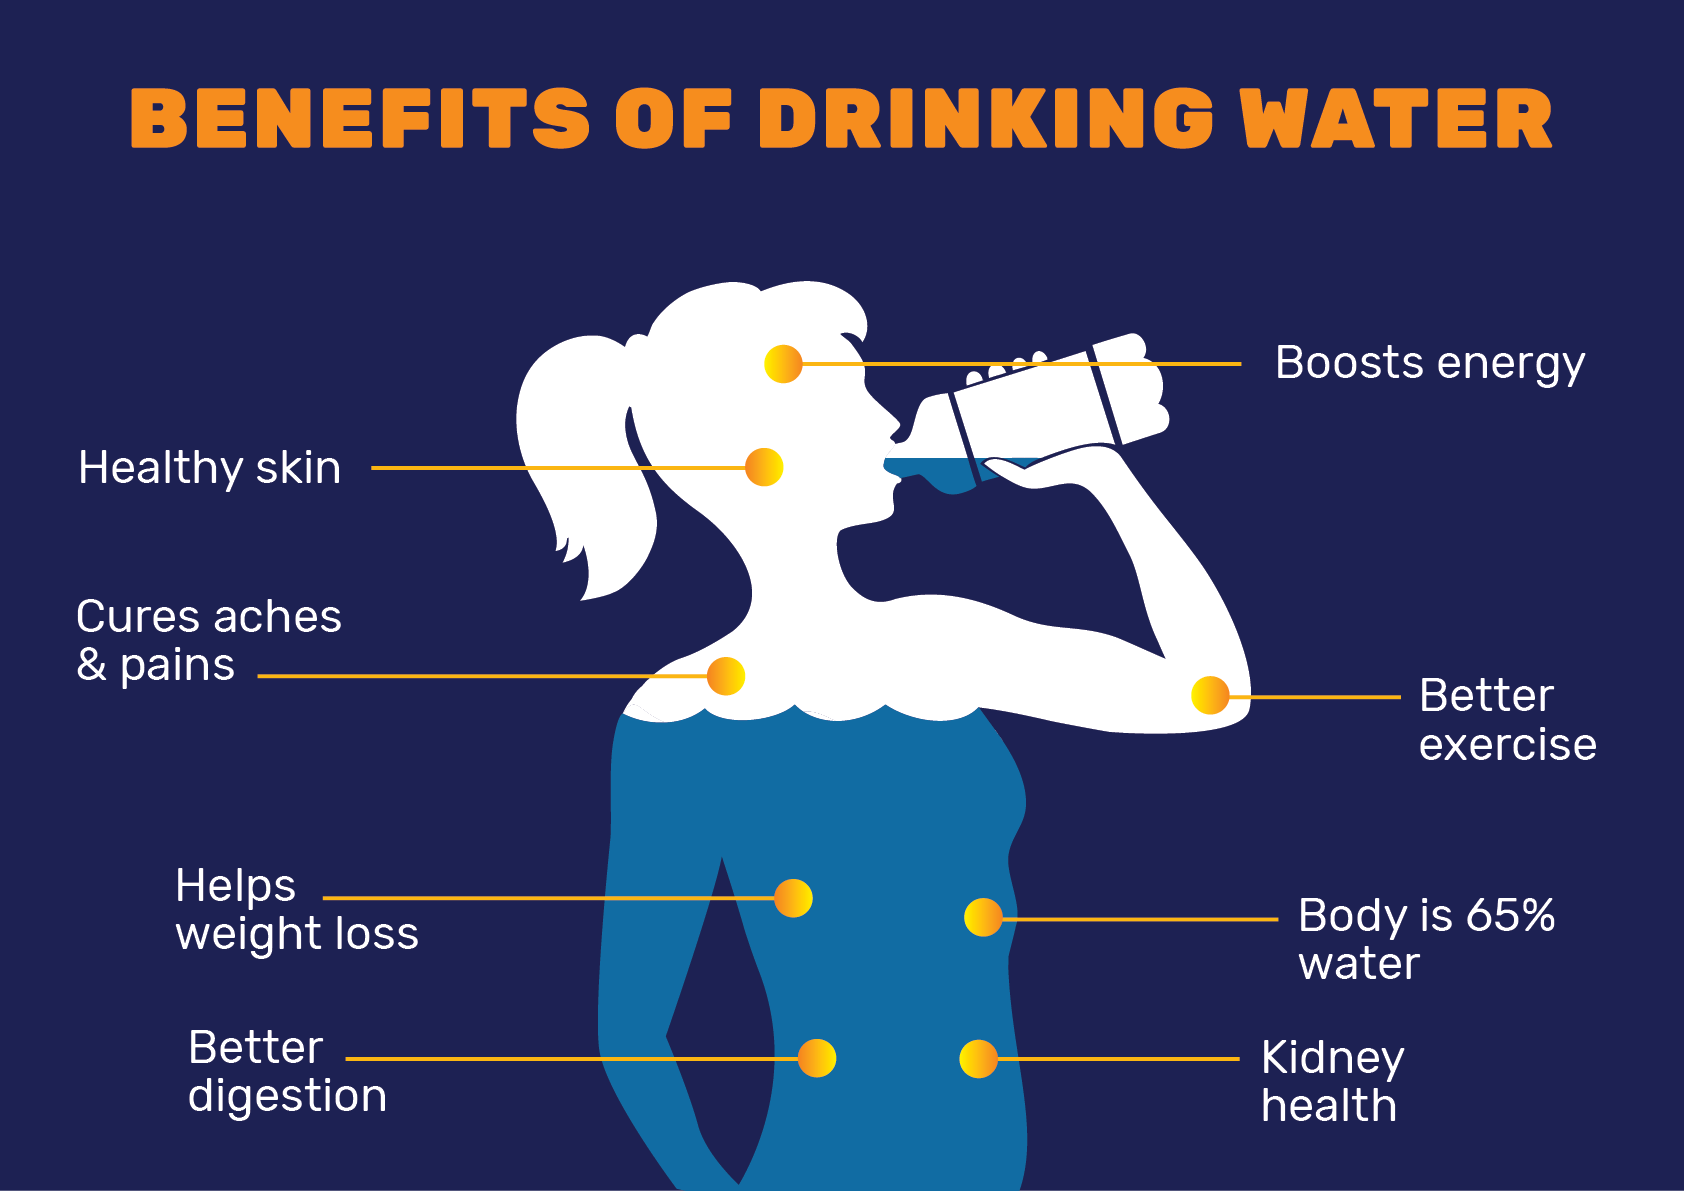 Benefits of Drinking Water | Infographic